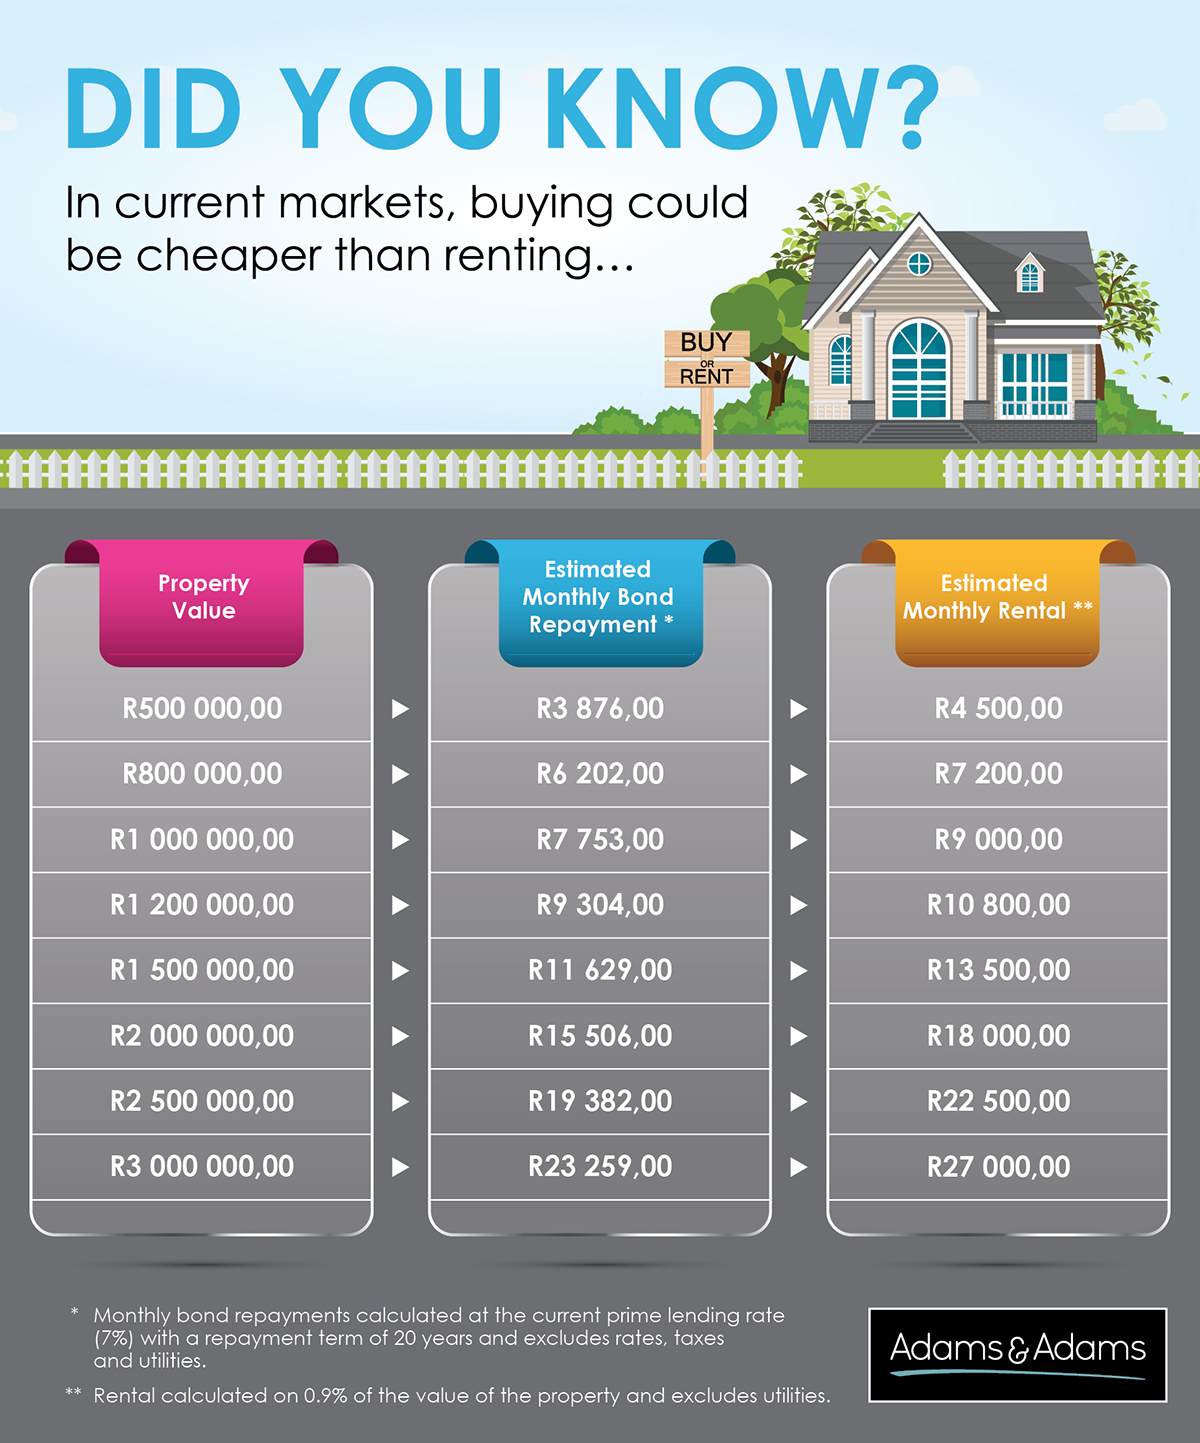 Buying vs Renting Table 2020 in south africa